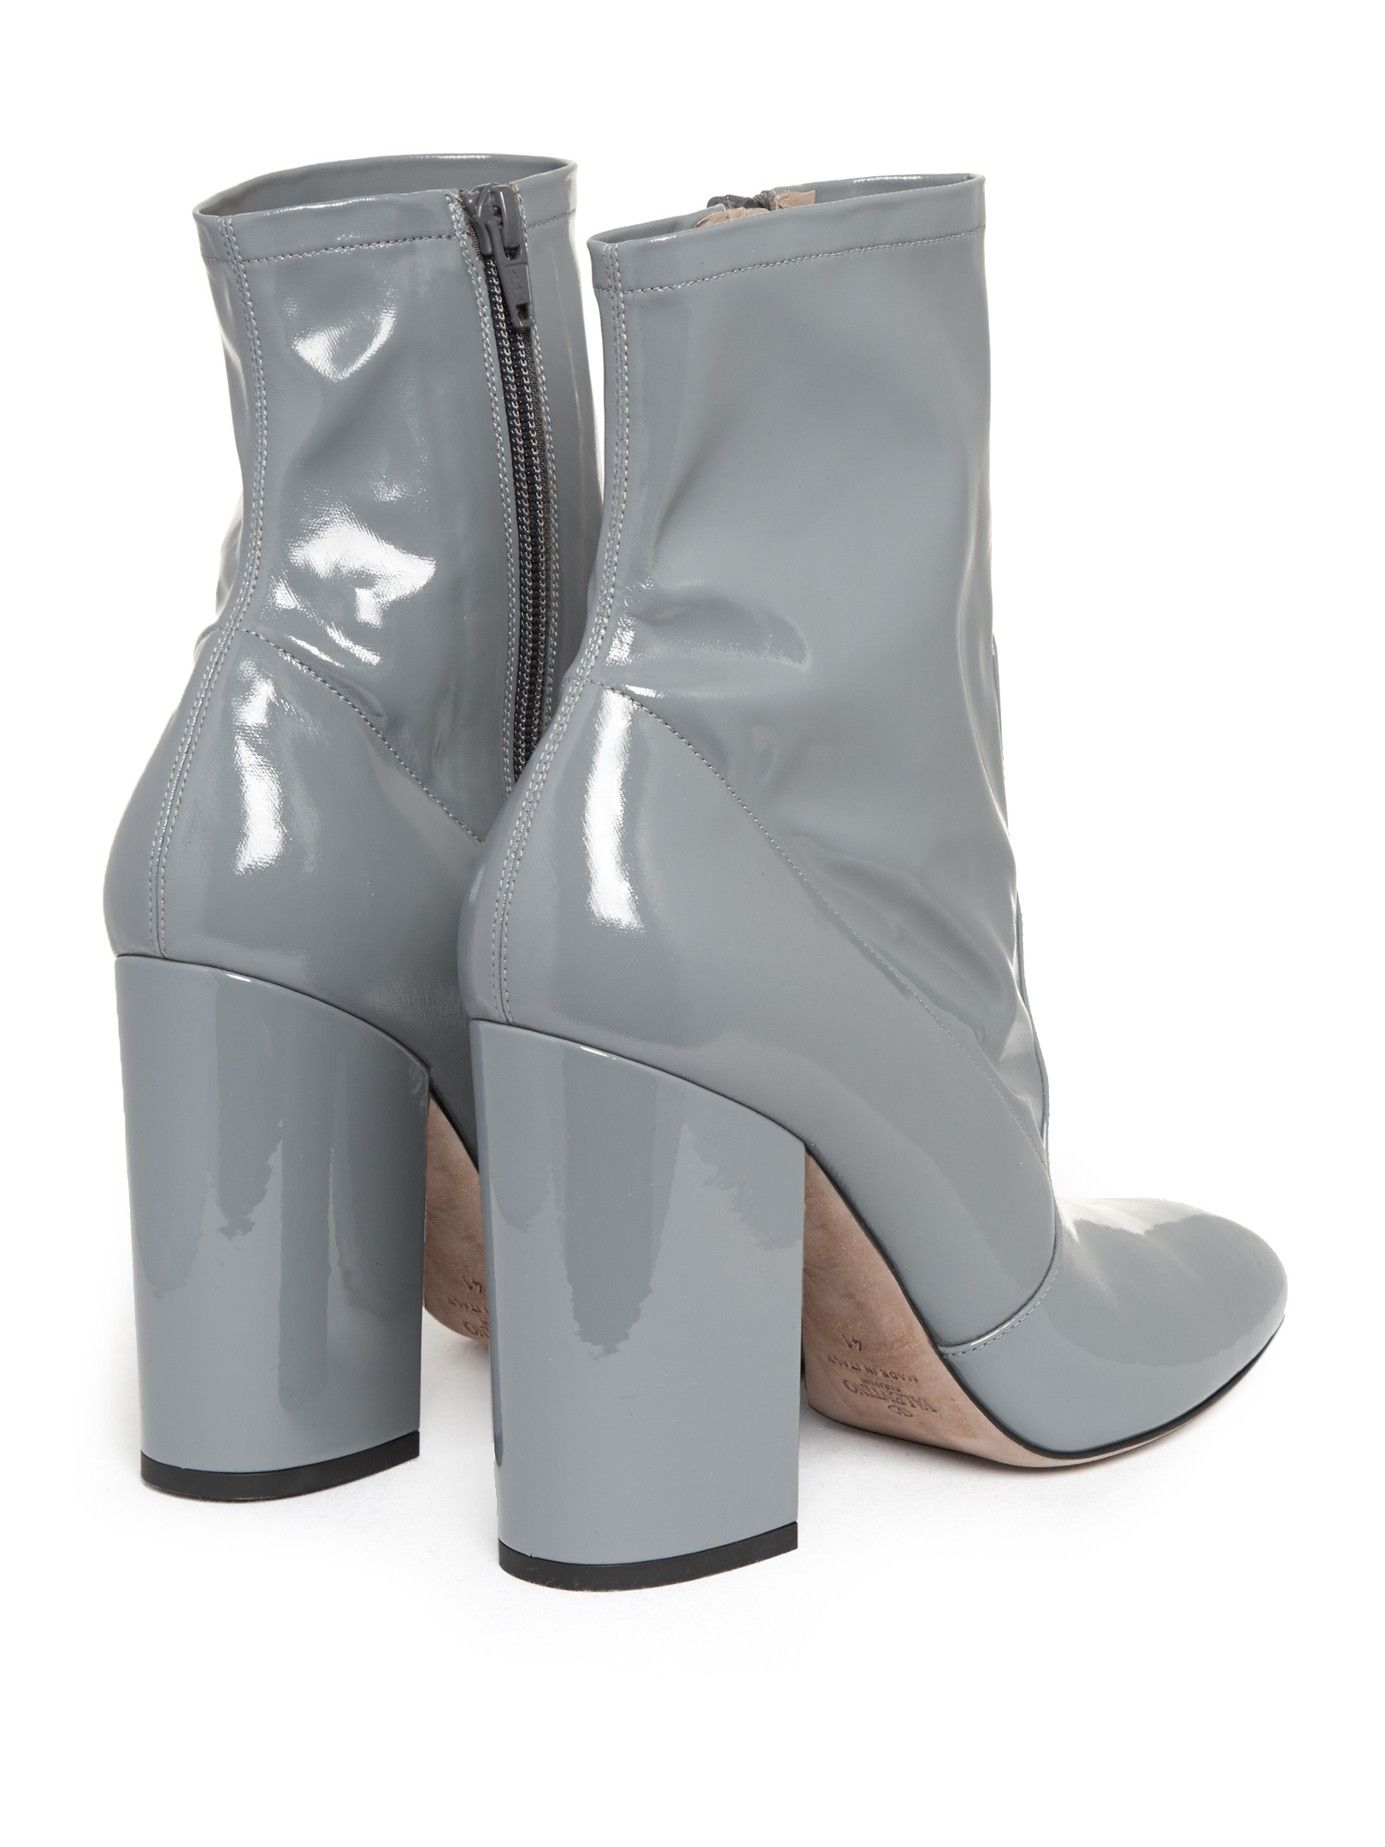 6920c991167 grey valentino patent boots | details | Boots, Shoes, Leather ankle ...